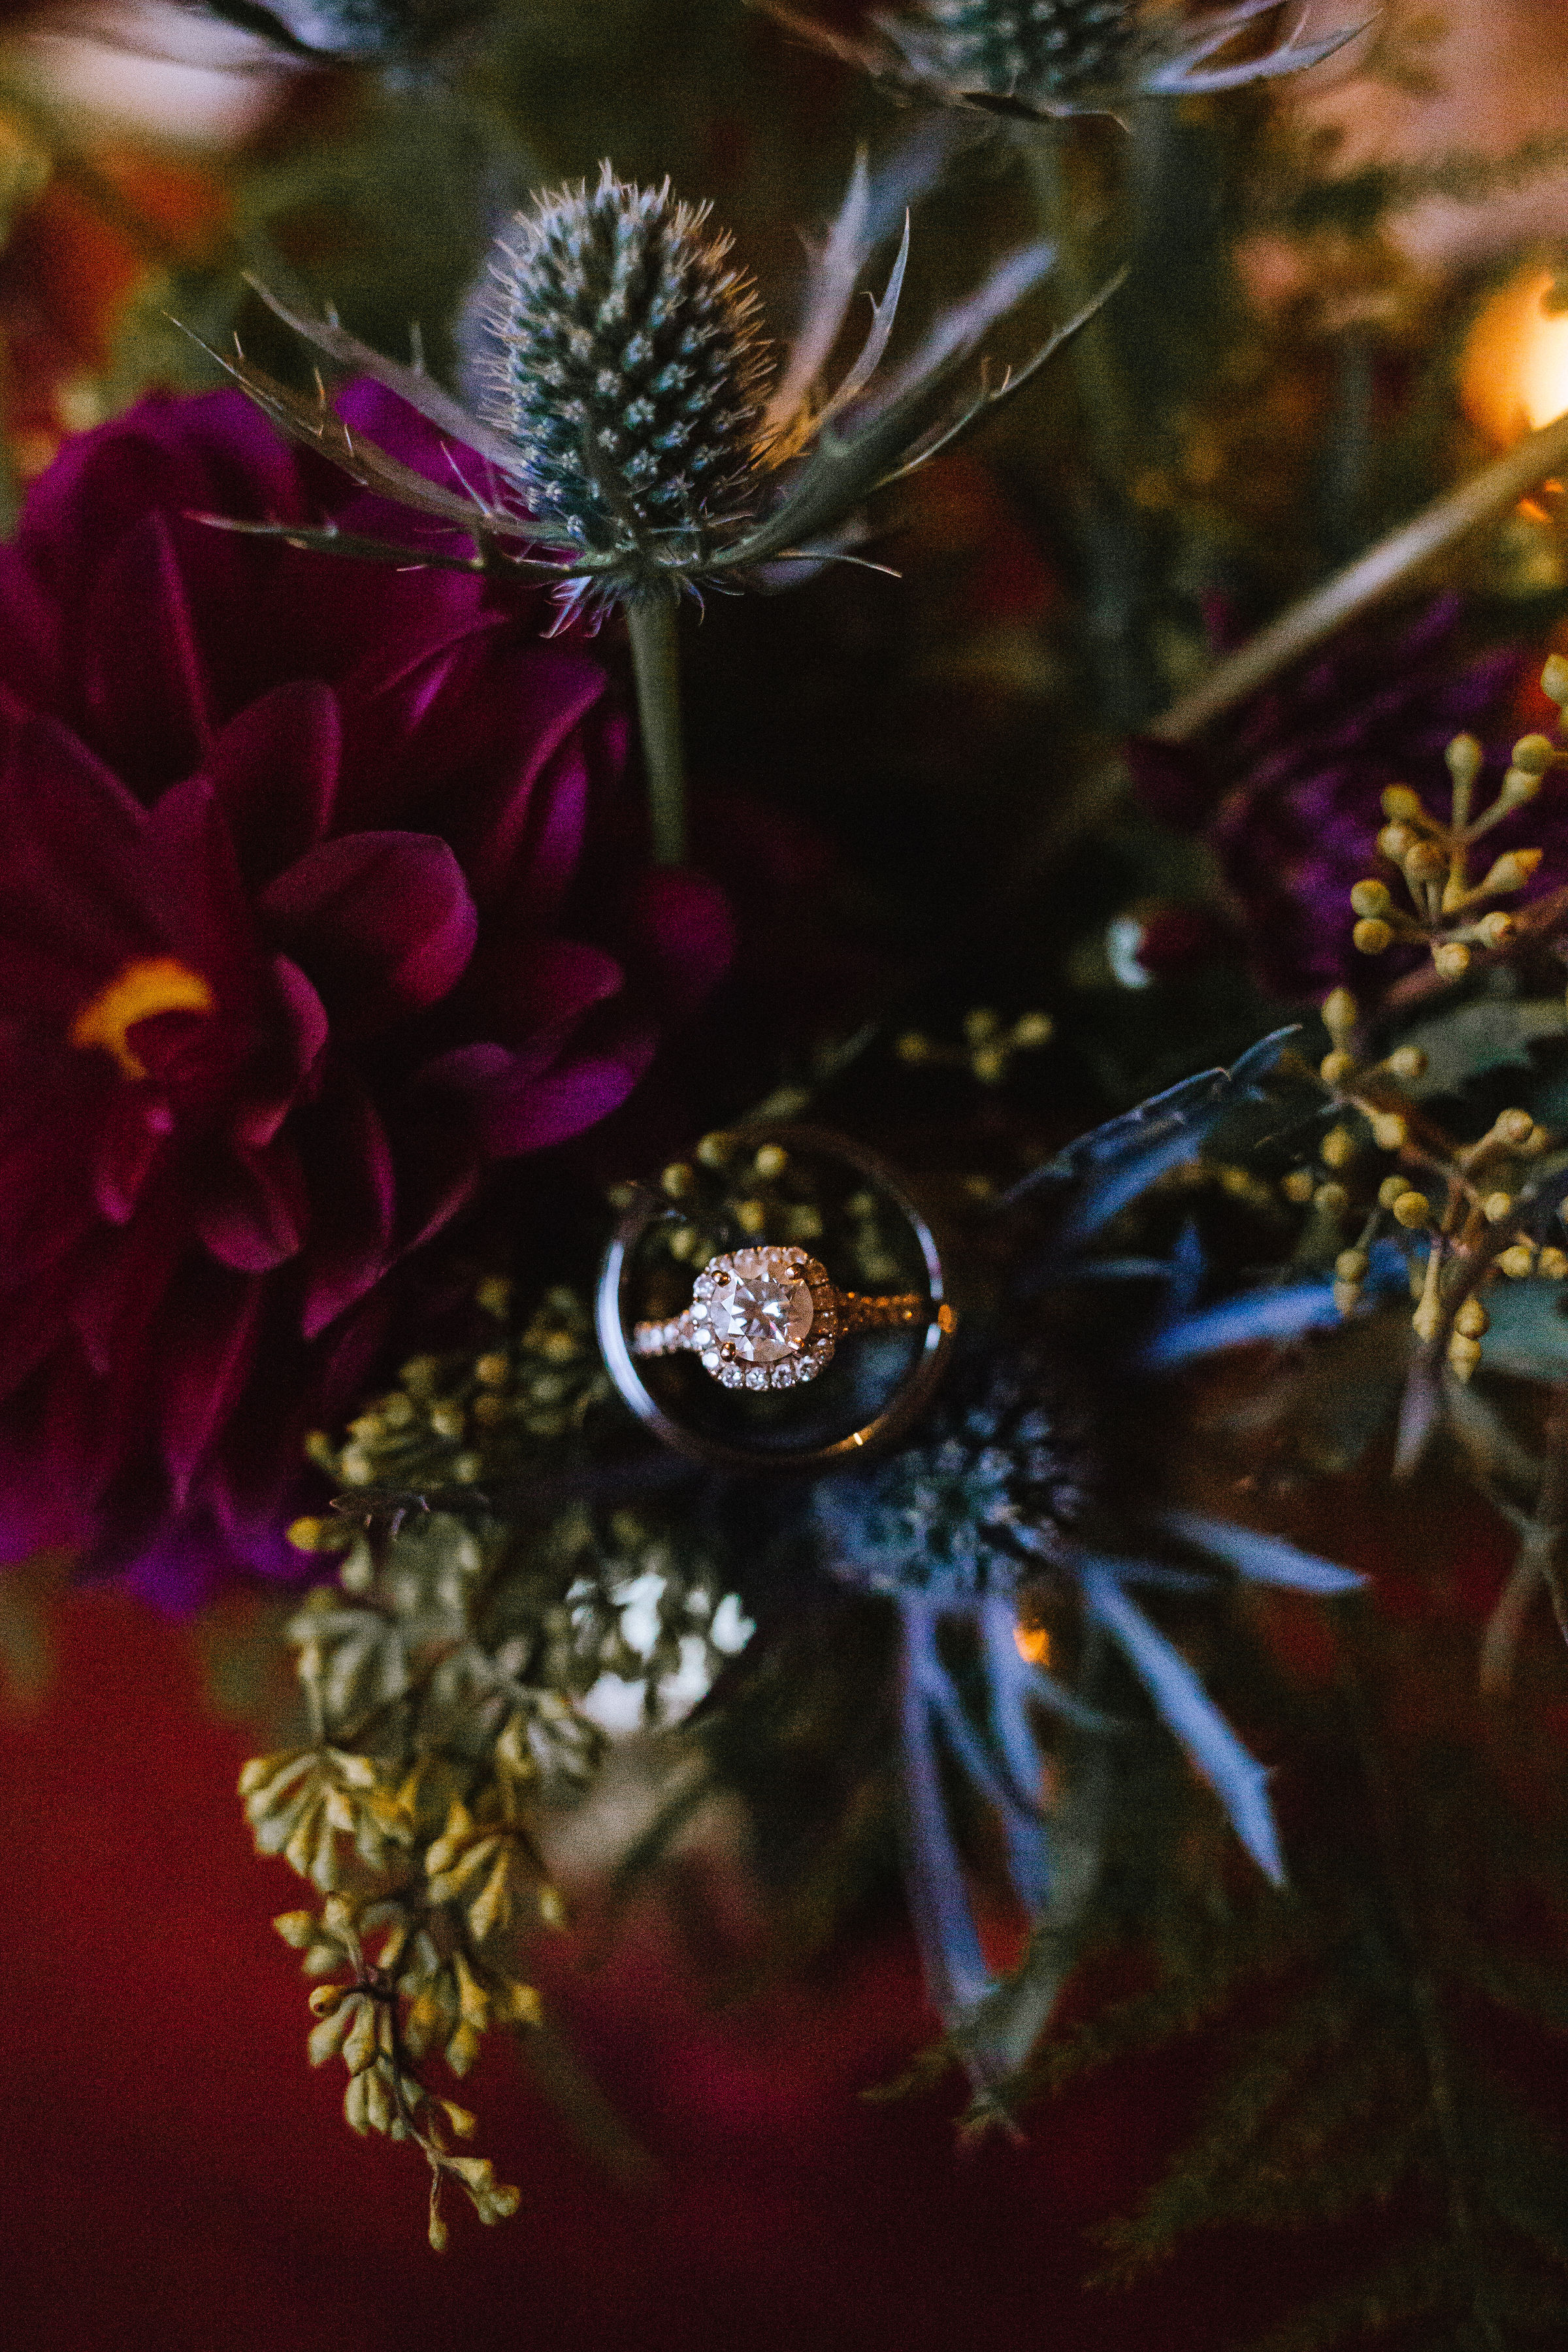 Wedding ring placed in wedding bouquet with blue thistle for Pittsburgh wedding at Studio Slate planned by Exhale Events. Find more wedding inspiration at exhale-events.com!